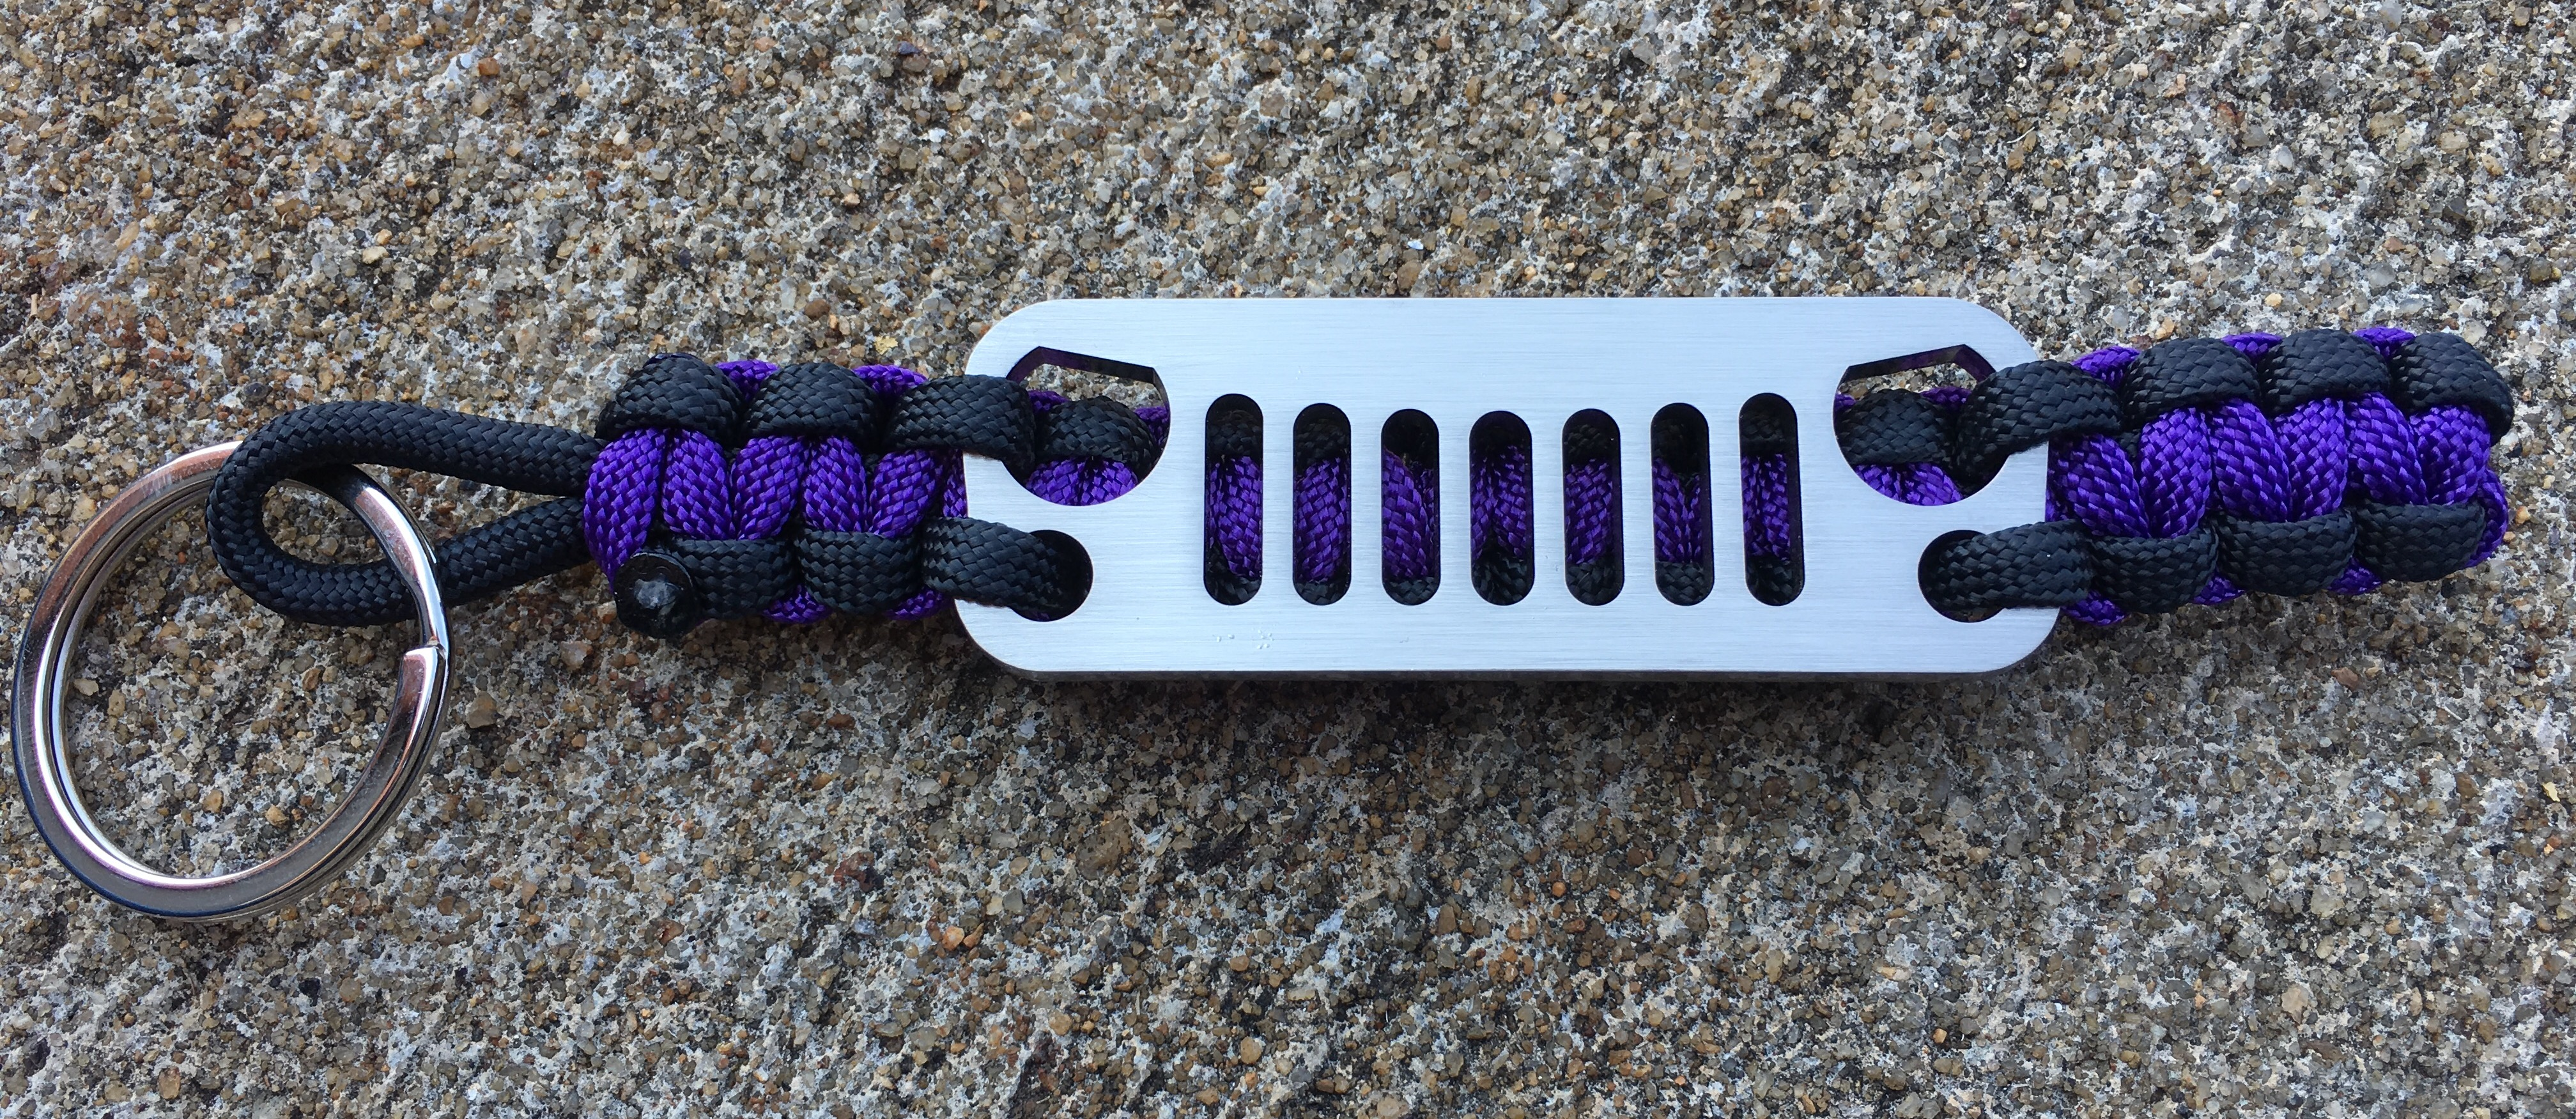 Jeep Grille Paracord Keychain in Purple and Black